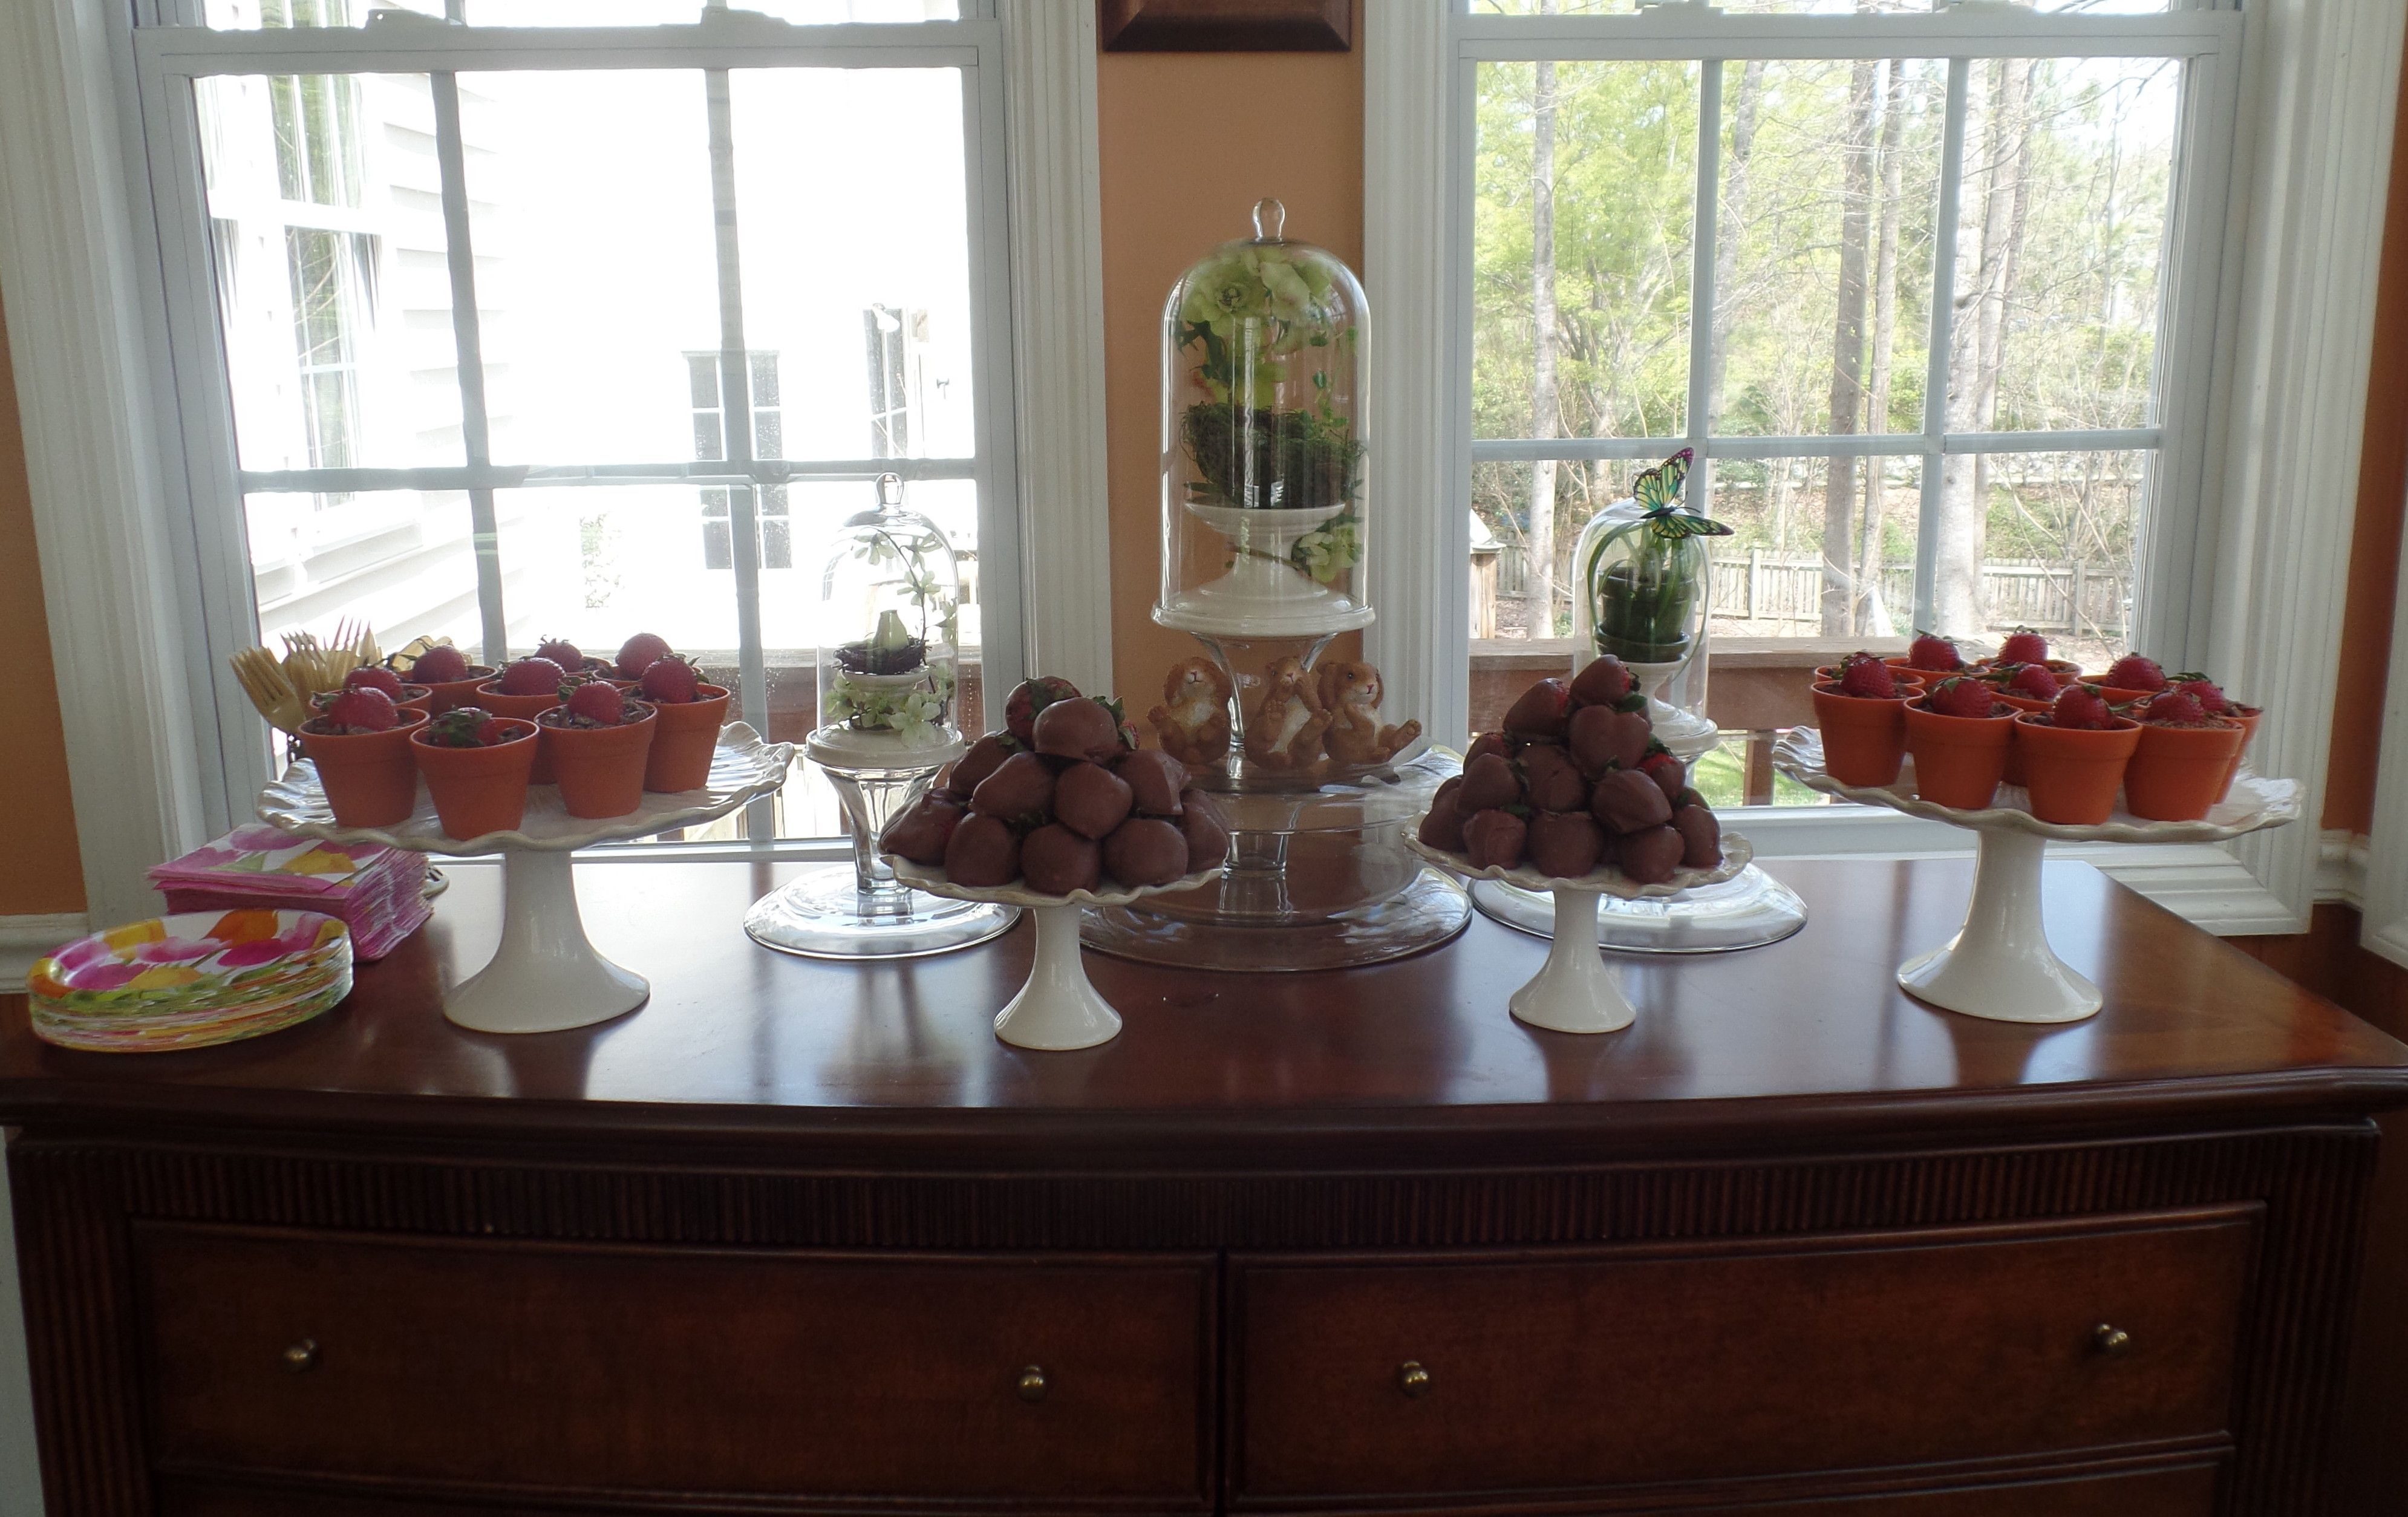 Easter dessert table...mini chocolate mousse in silicone flowerpots and chocolate covered strawberries